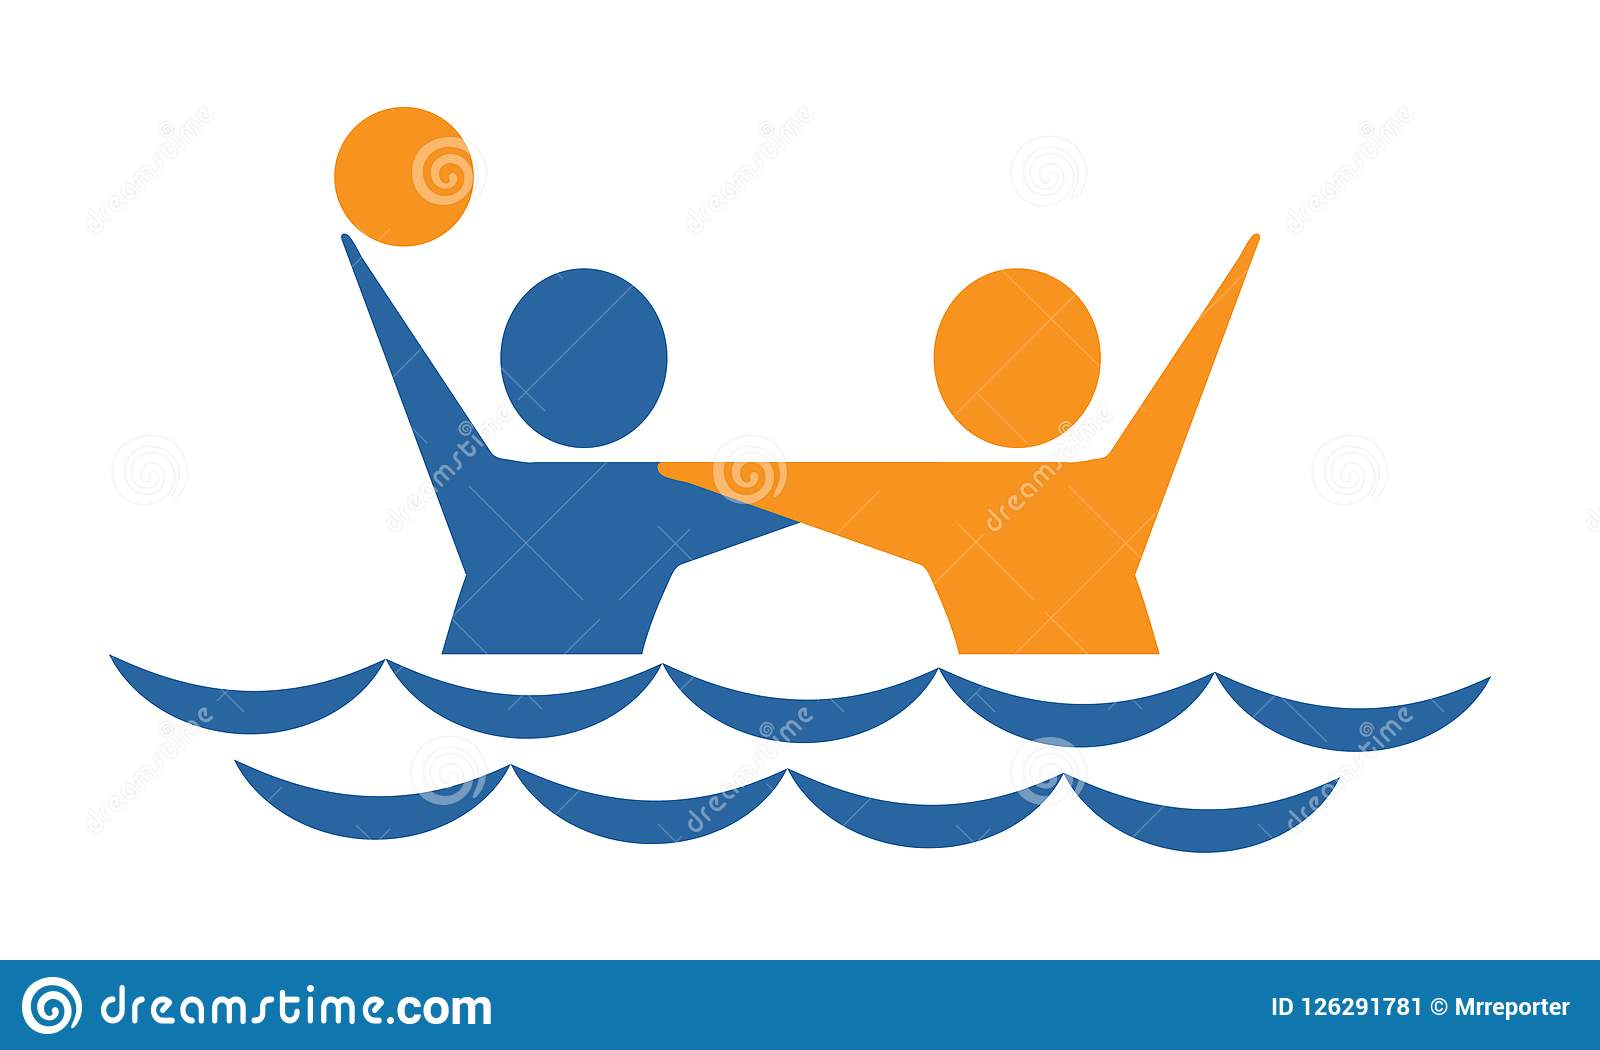 bc7be6f977453 Waterpolo stock illustration. Illustration of abstract - 126291781